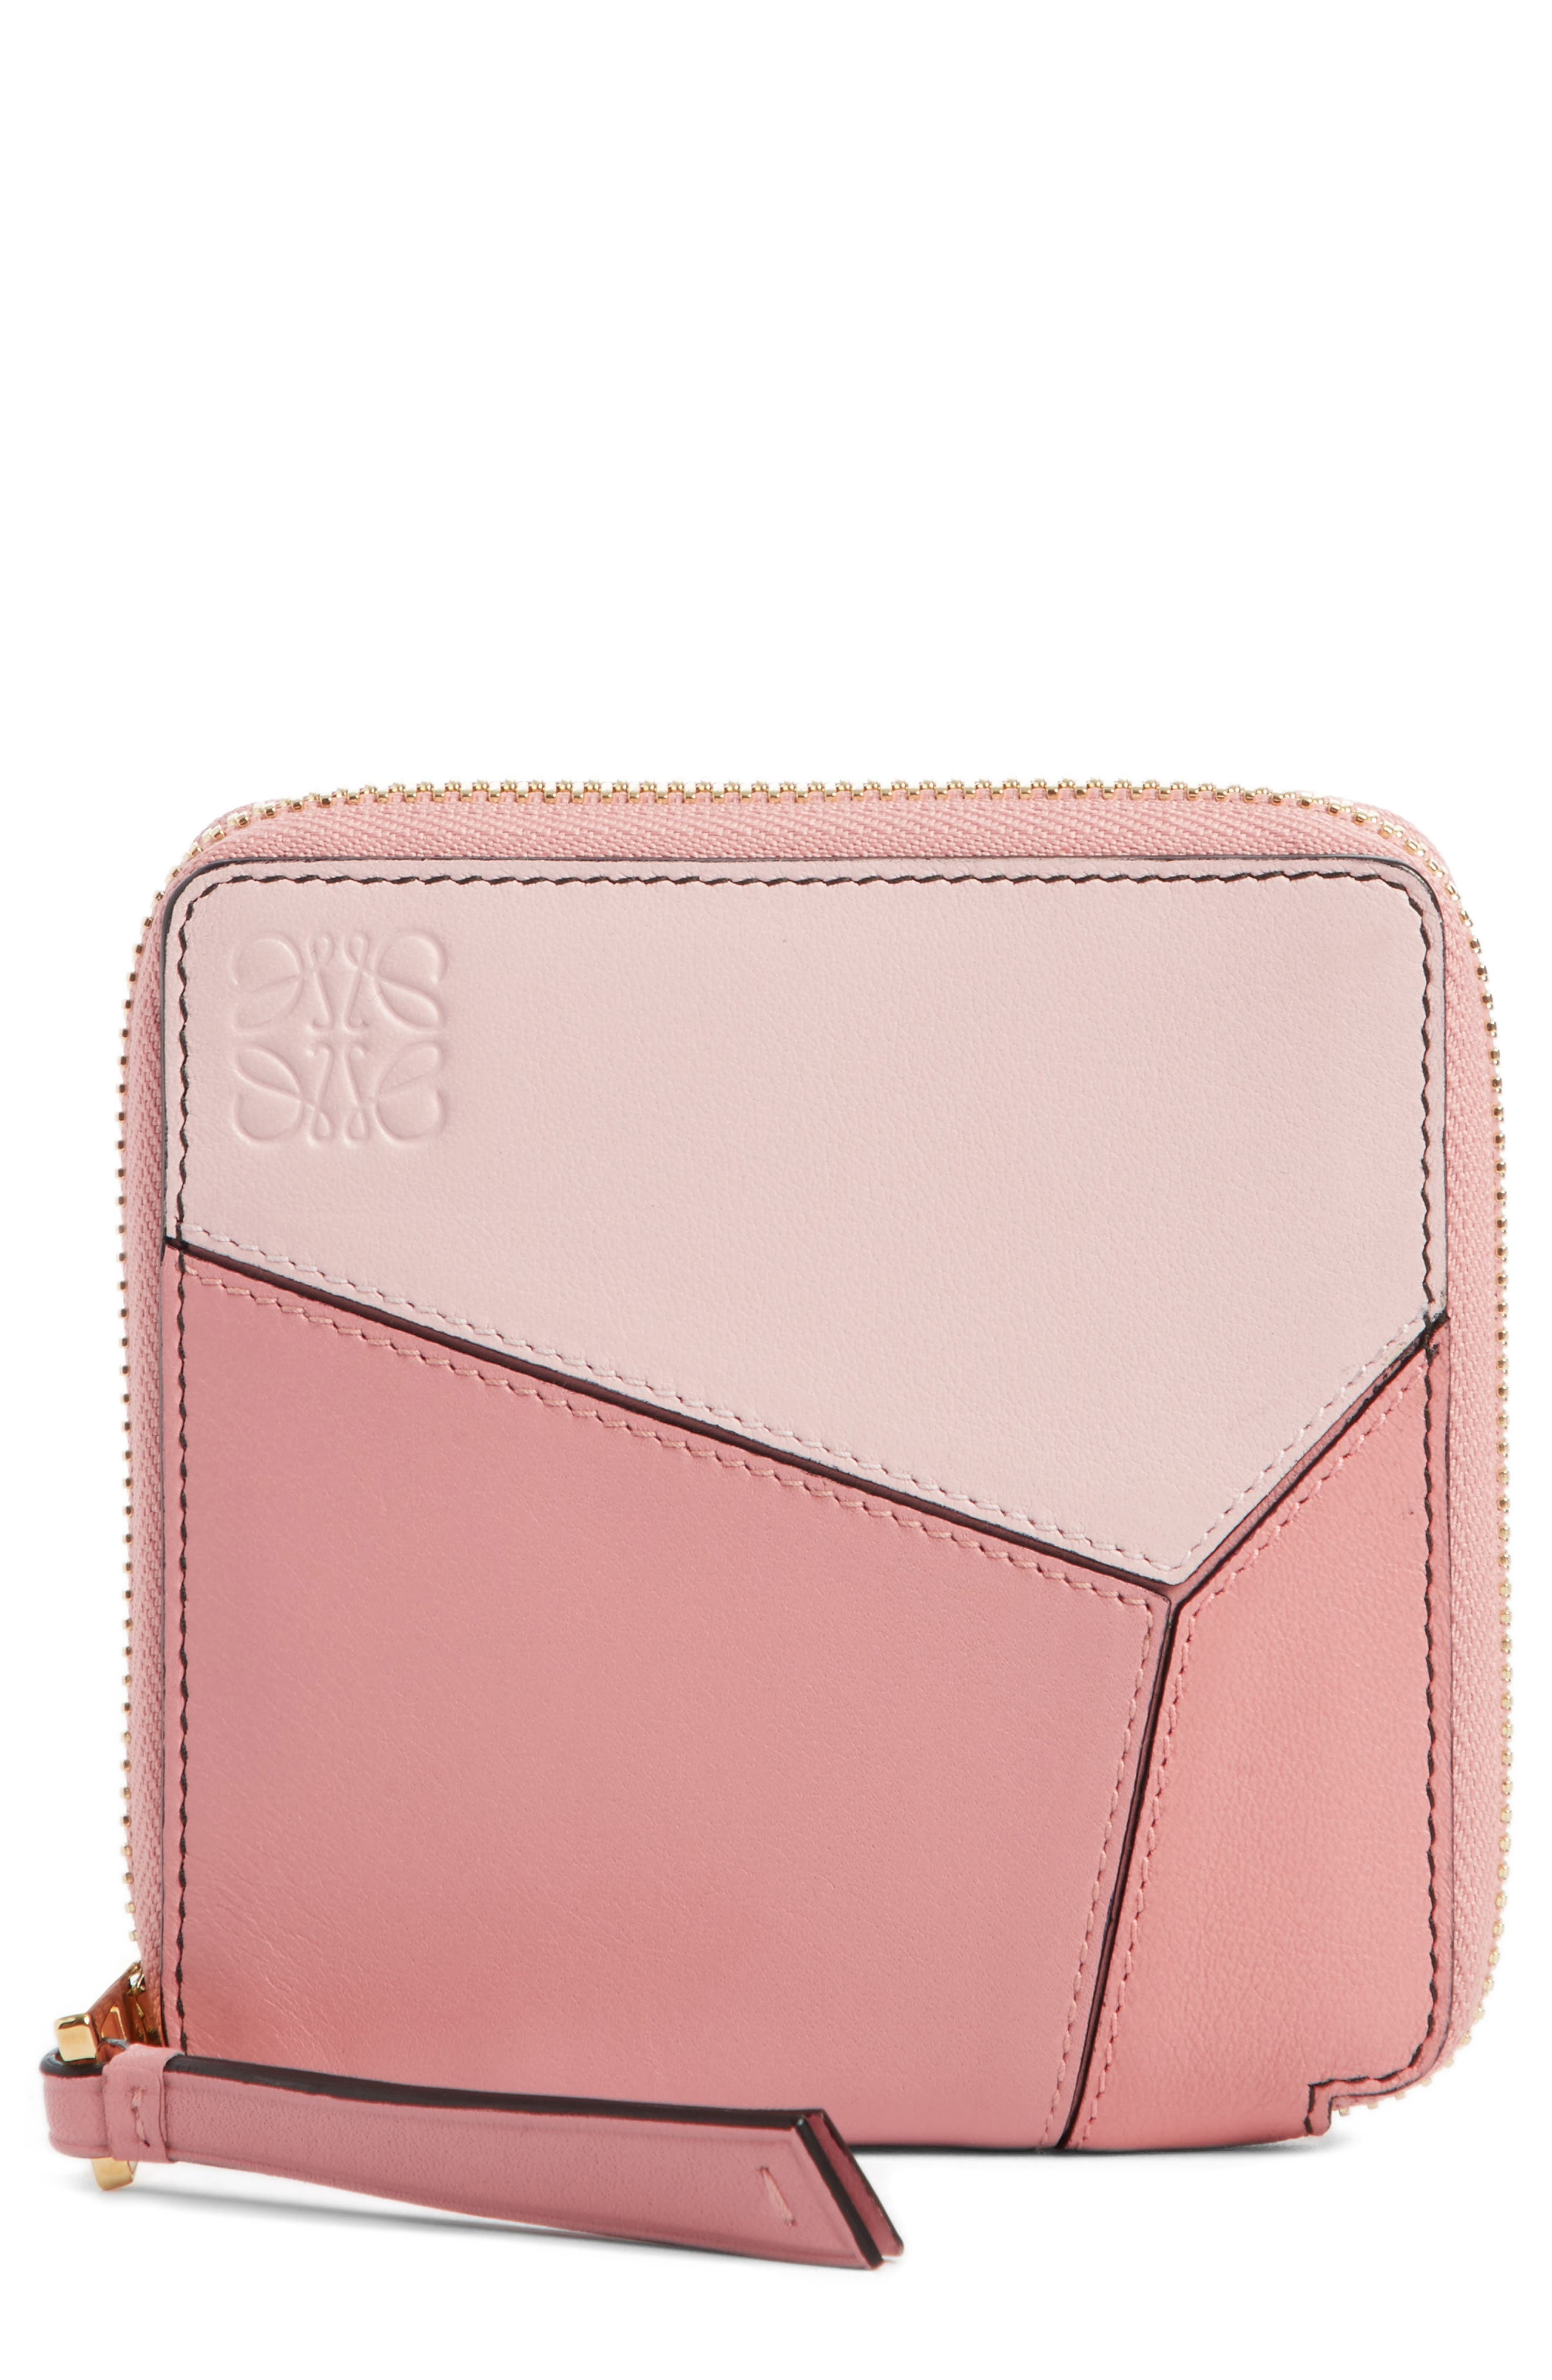 Colorblock Puzzle French Wallet,                             Main thumbnail 1, color,                             MULTI PINK